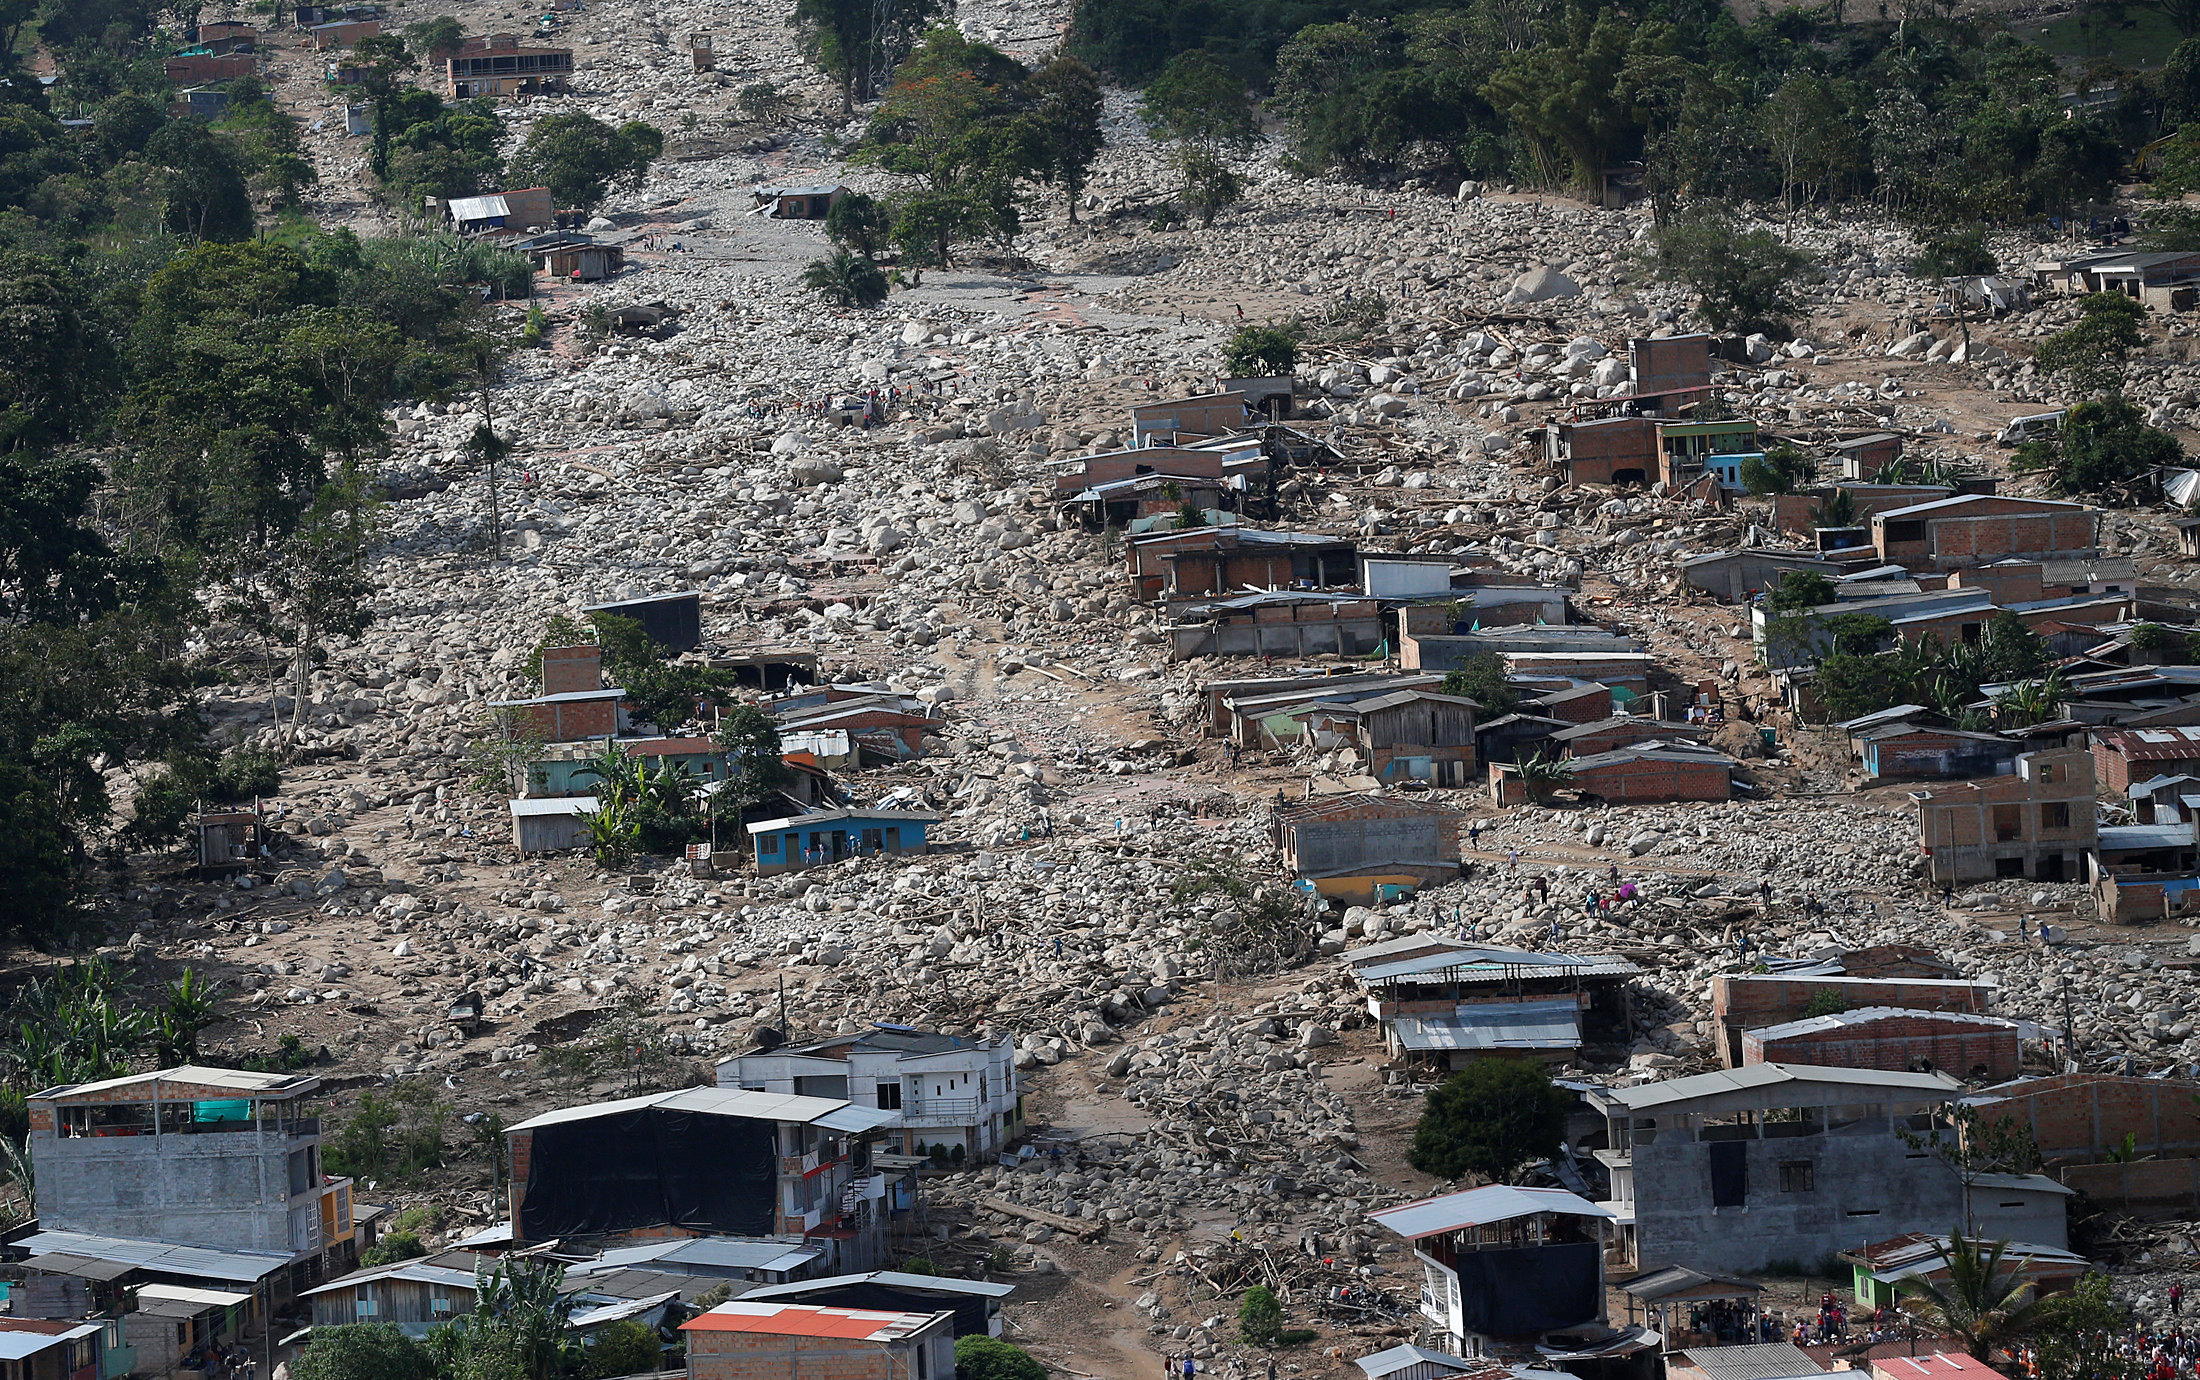 Aerial view of a neighborhood destroyed after flooding and mudslides caused by heavy rains leading several rivers to overflow, pushing sediment and rocks into buildings and roads, in Mocoa, Colombia on April 3, 2017. (REUTERS/Jaime Saldarriaga)